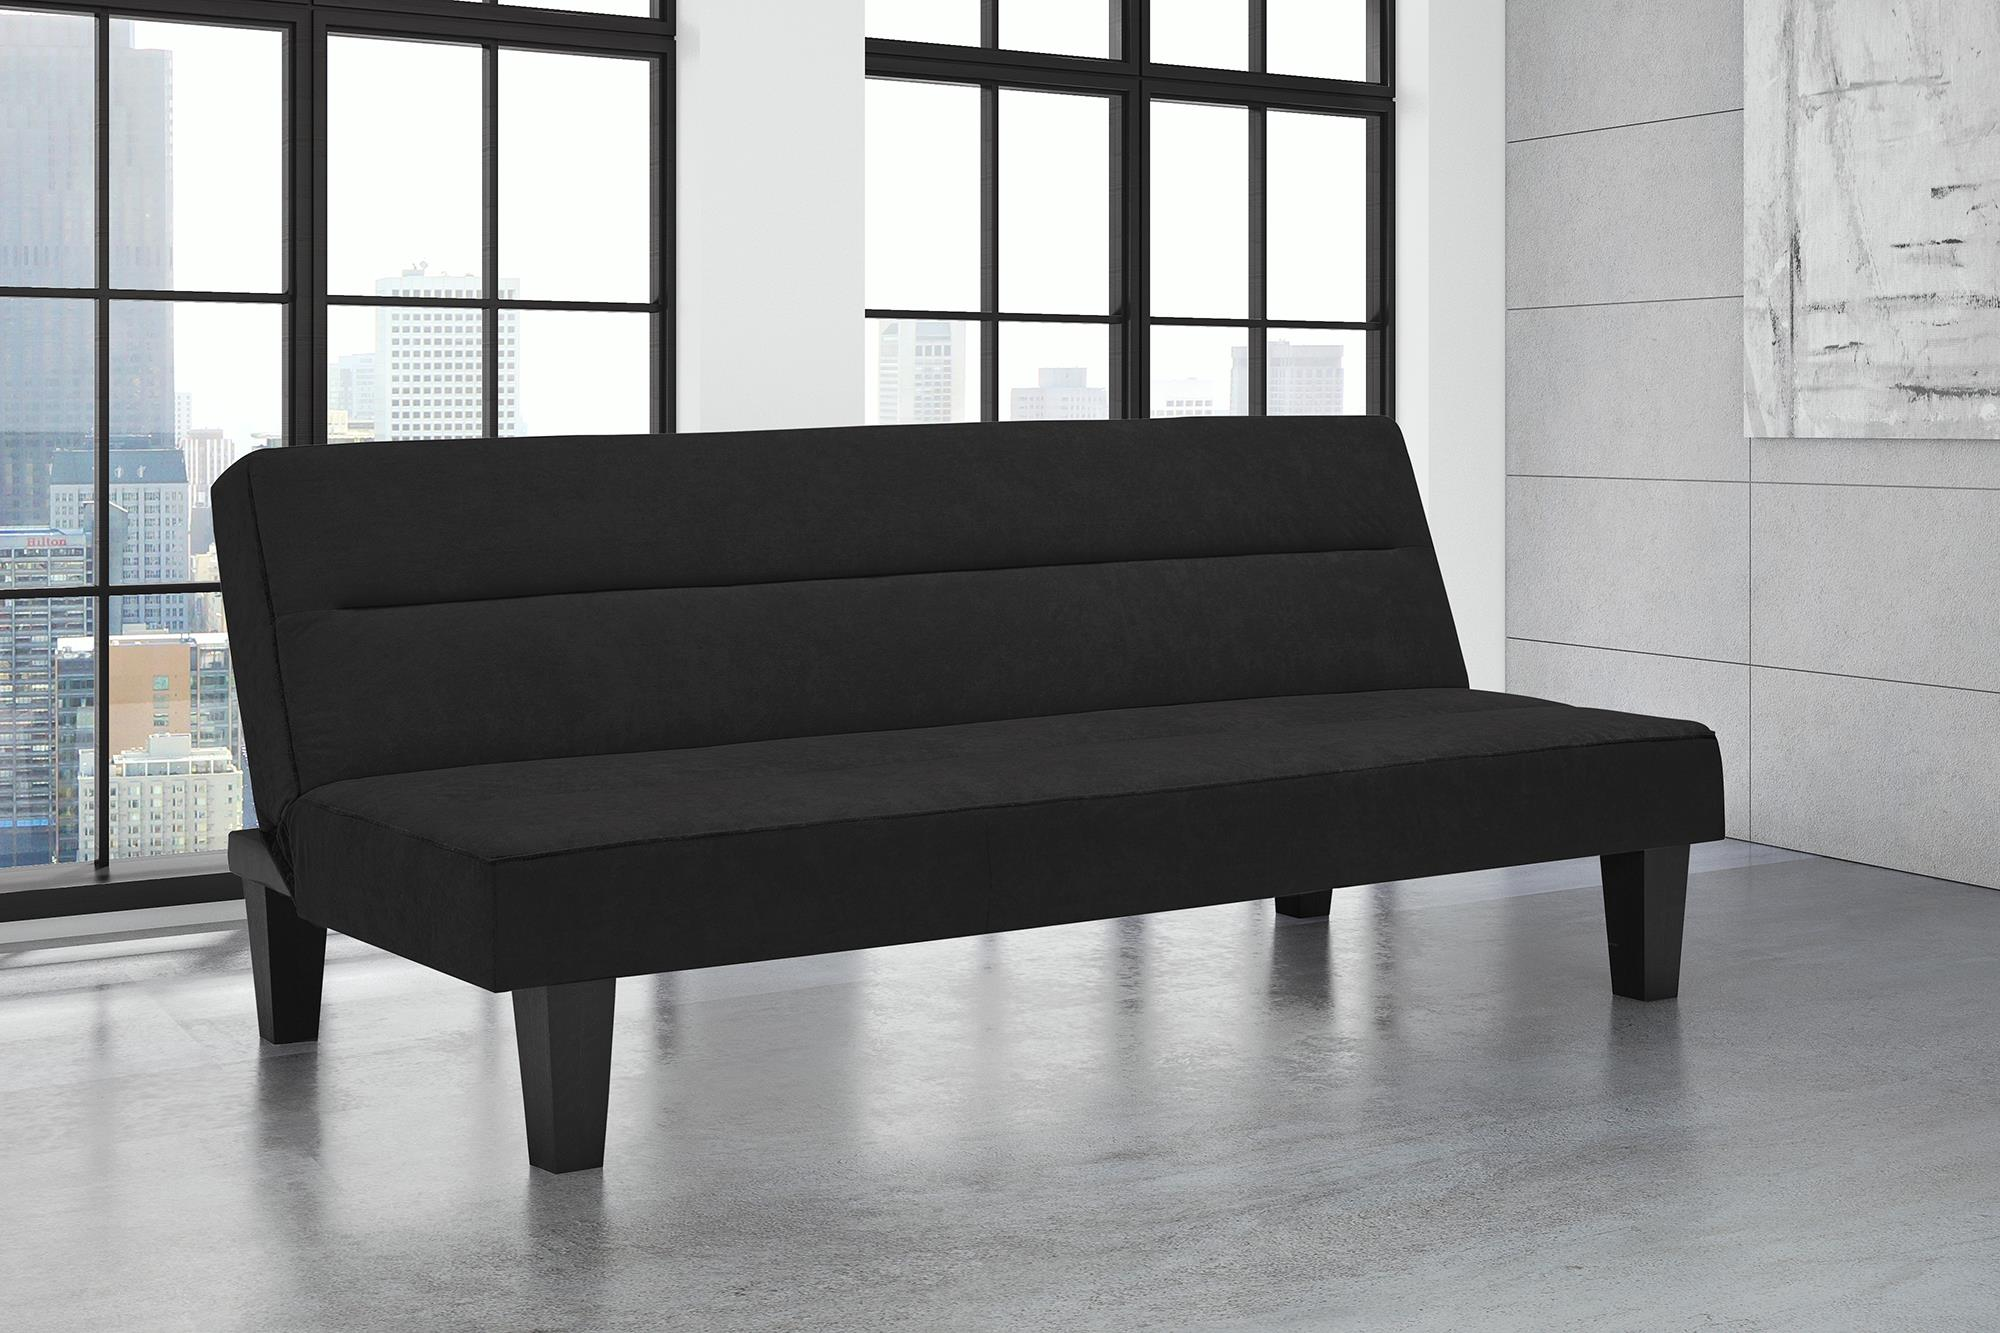 kebo futon sofa bed, multiple colors JAREWVN